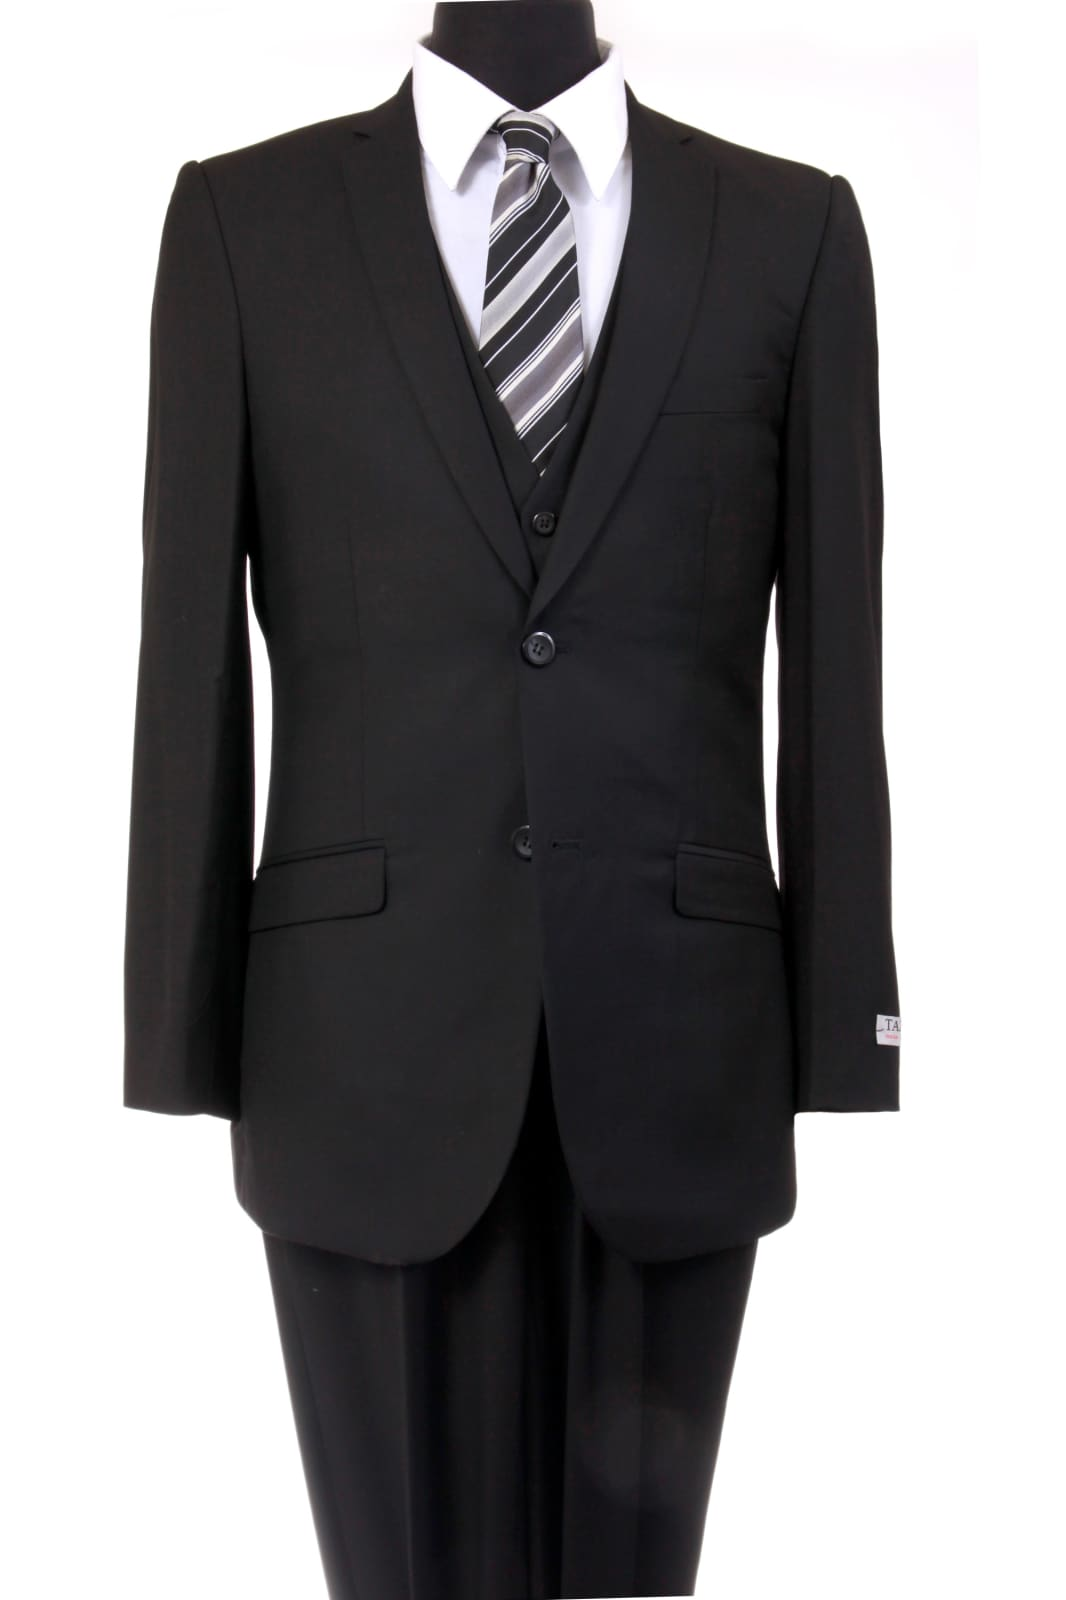 Ultra Slim Fit 3 Piece Men's Suit - LA154SA - BLACK /